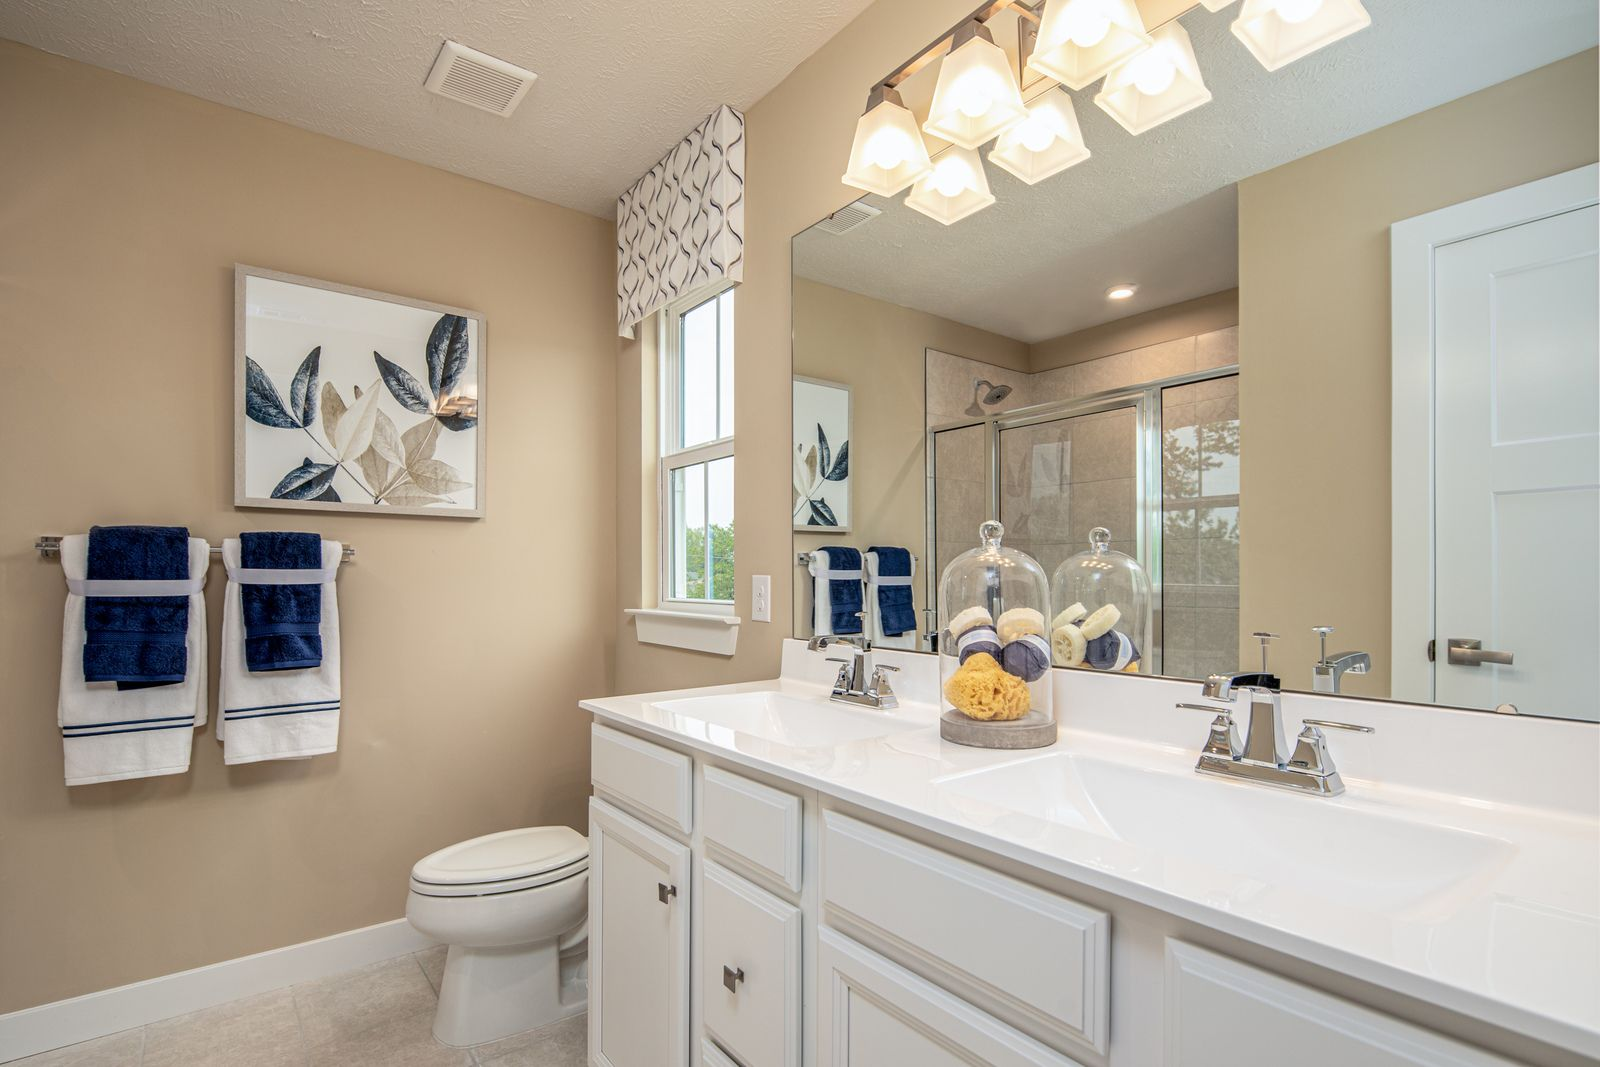 Bathroom featured in the Allegheny By Ryan Homes in Cleveland, OH